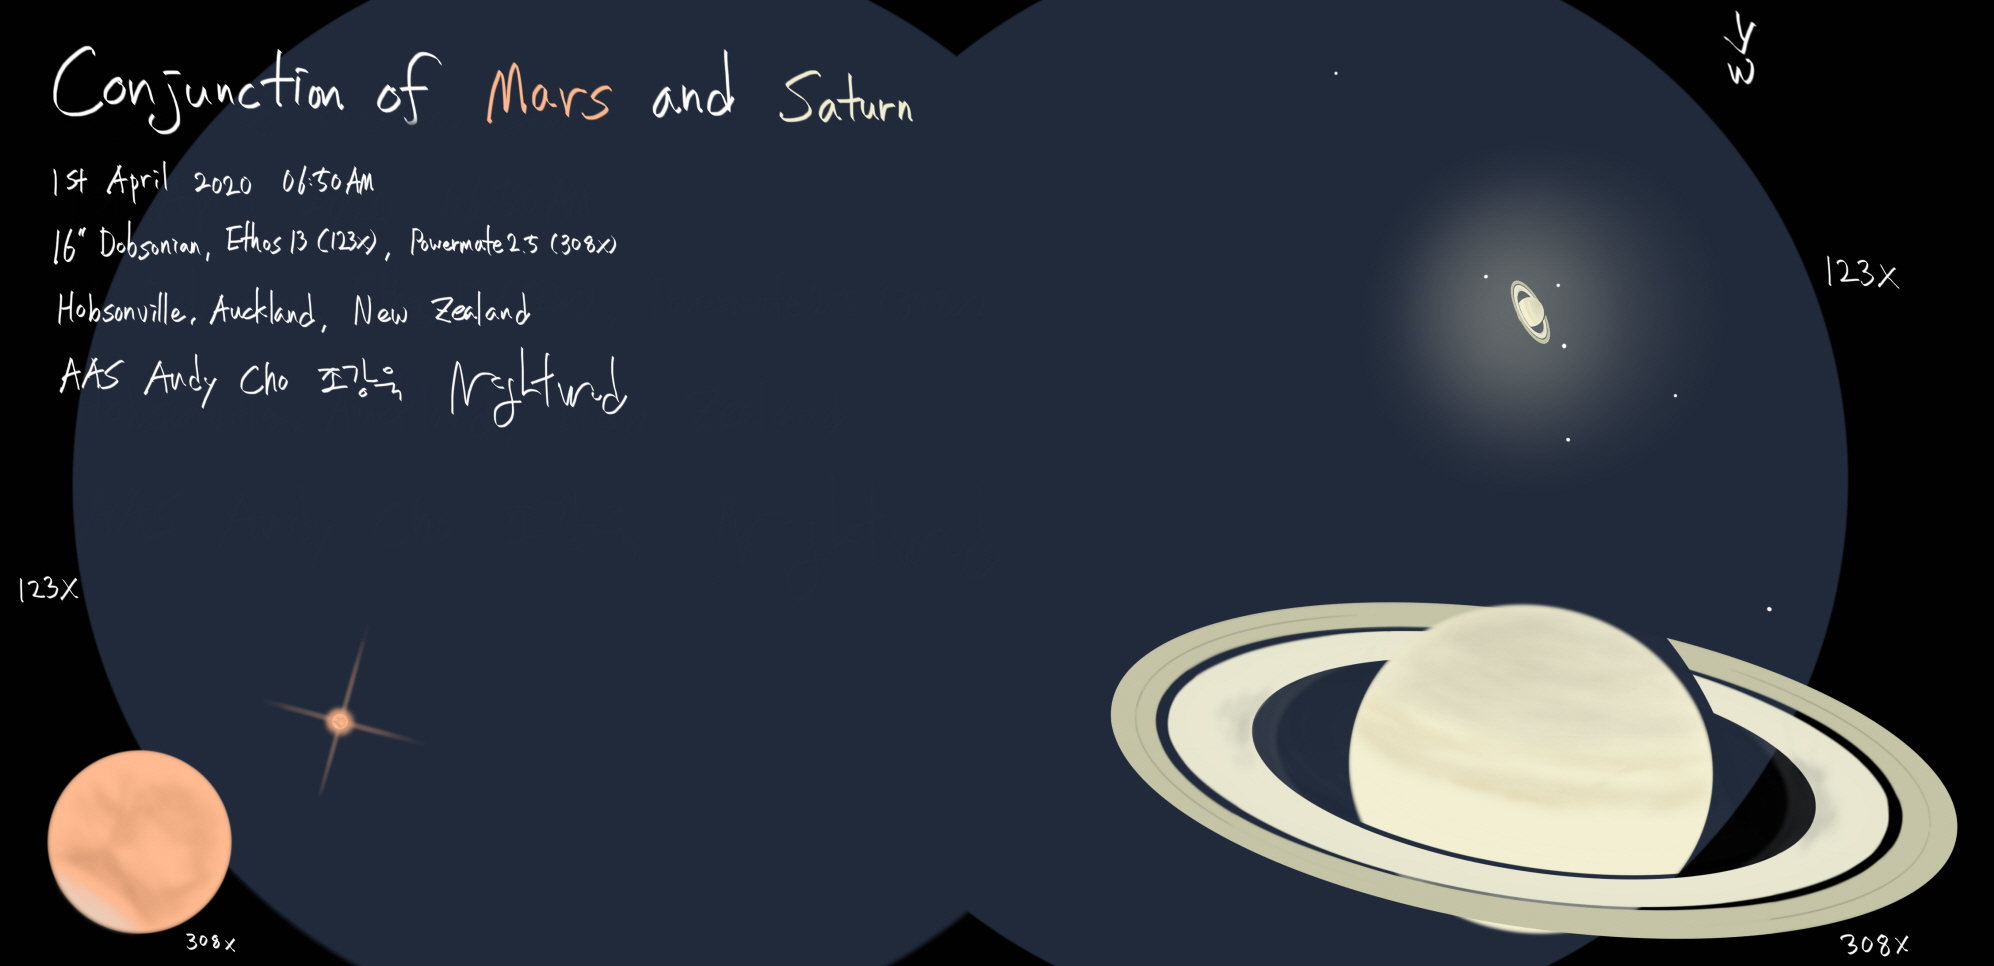 500_Conjuncton of Mars and Saturn 1 April 2020.jpg